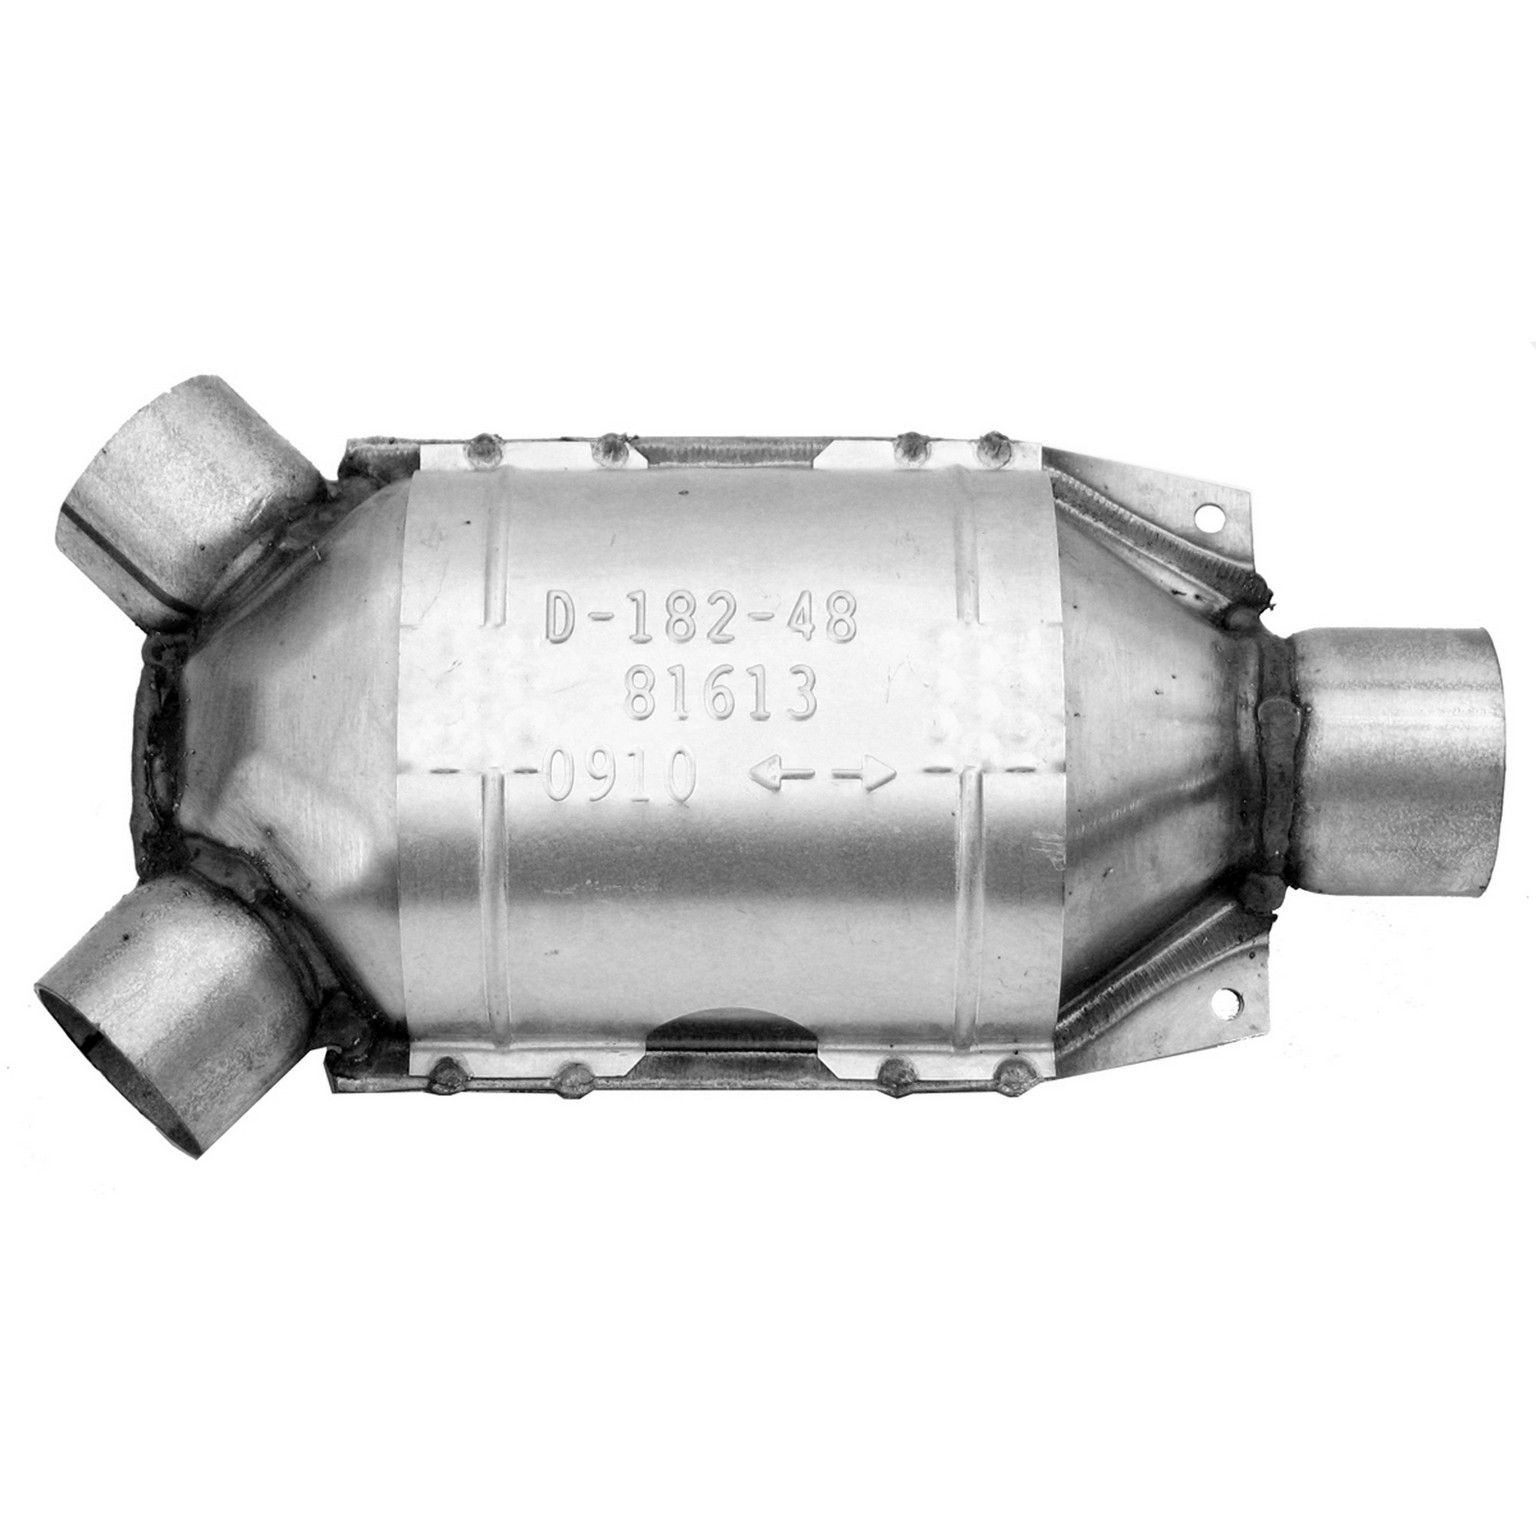 2001 Subaru Outback Catalytic Converter Rear 6 Cyl 30l Walker 81613 Engine Family 1fjxv030kfk Legal For Use In The States Of California And New: 2005 Subaru Outback Catalytic Converter California At Woreks.co